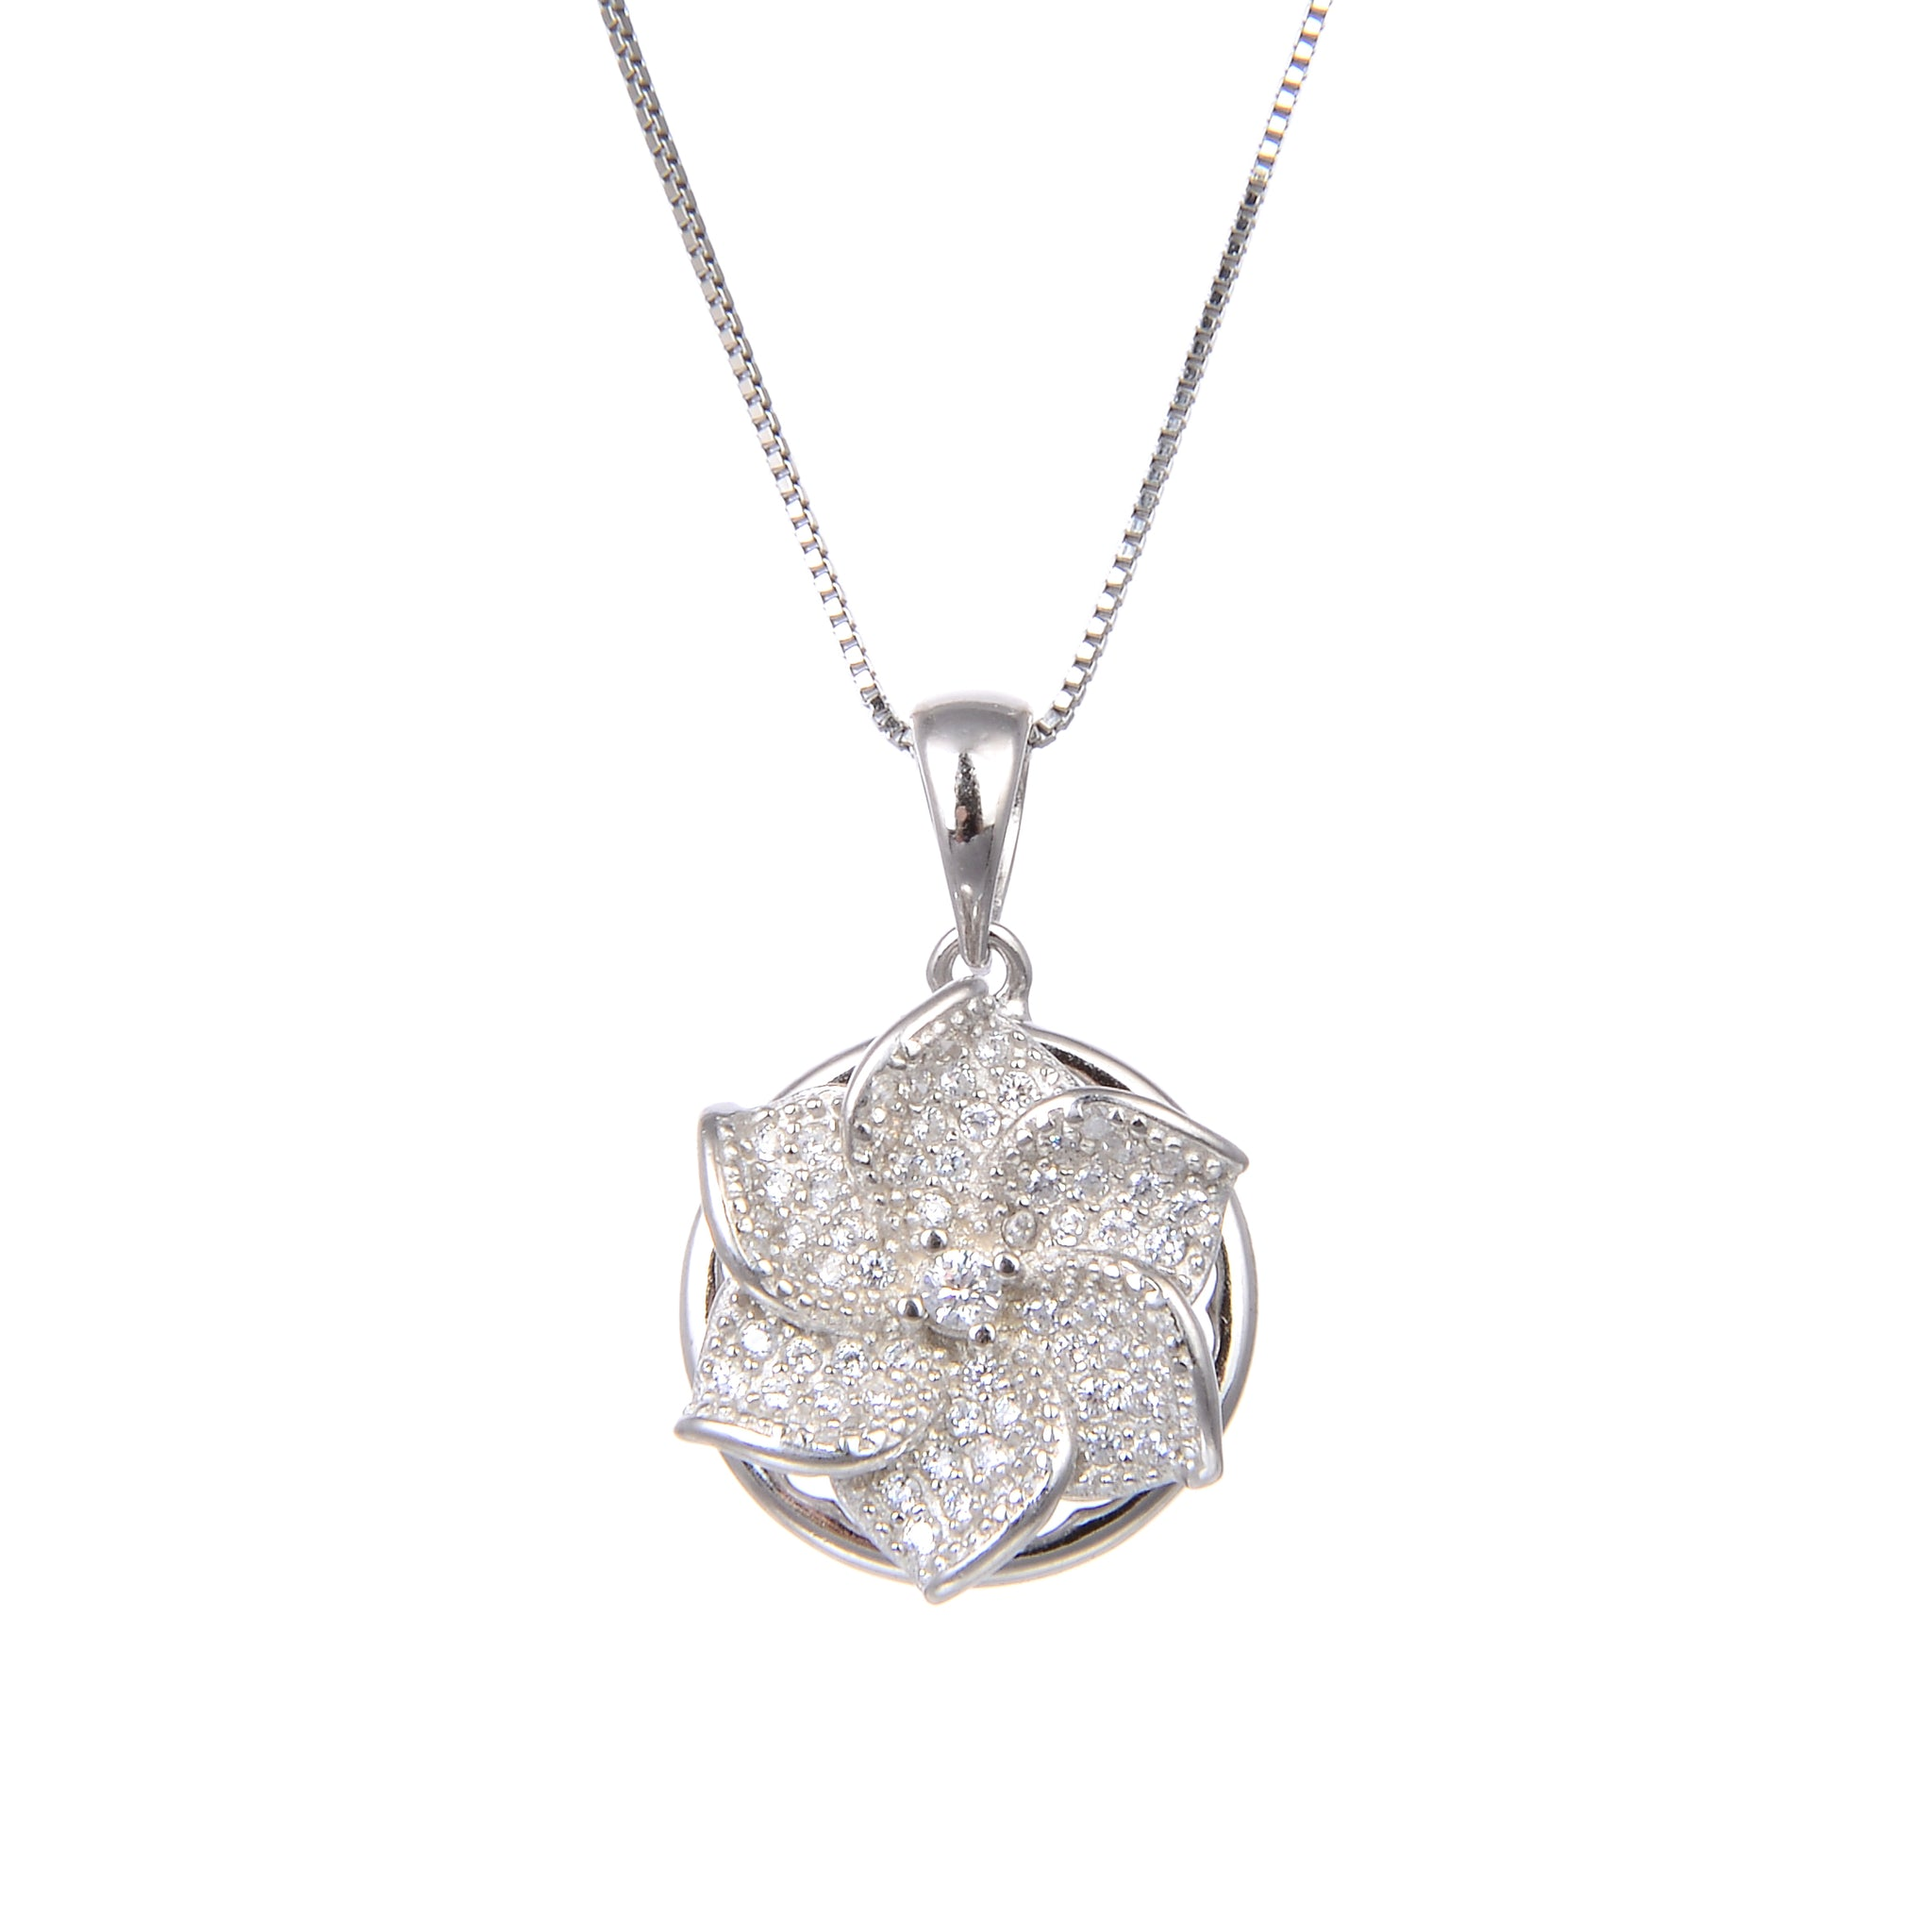 92.5 Sterling Silver Necklace With CZ Cubic Zirconia Spin Flower Shape Pendant